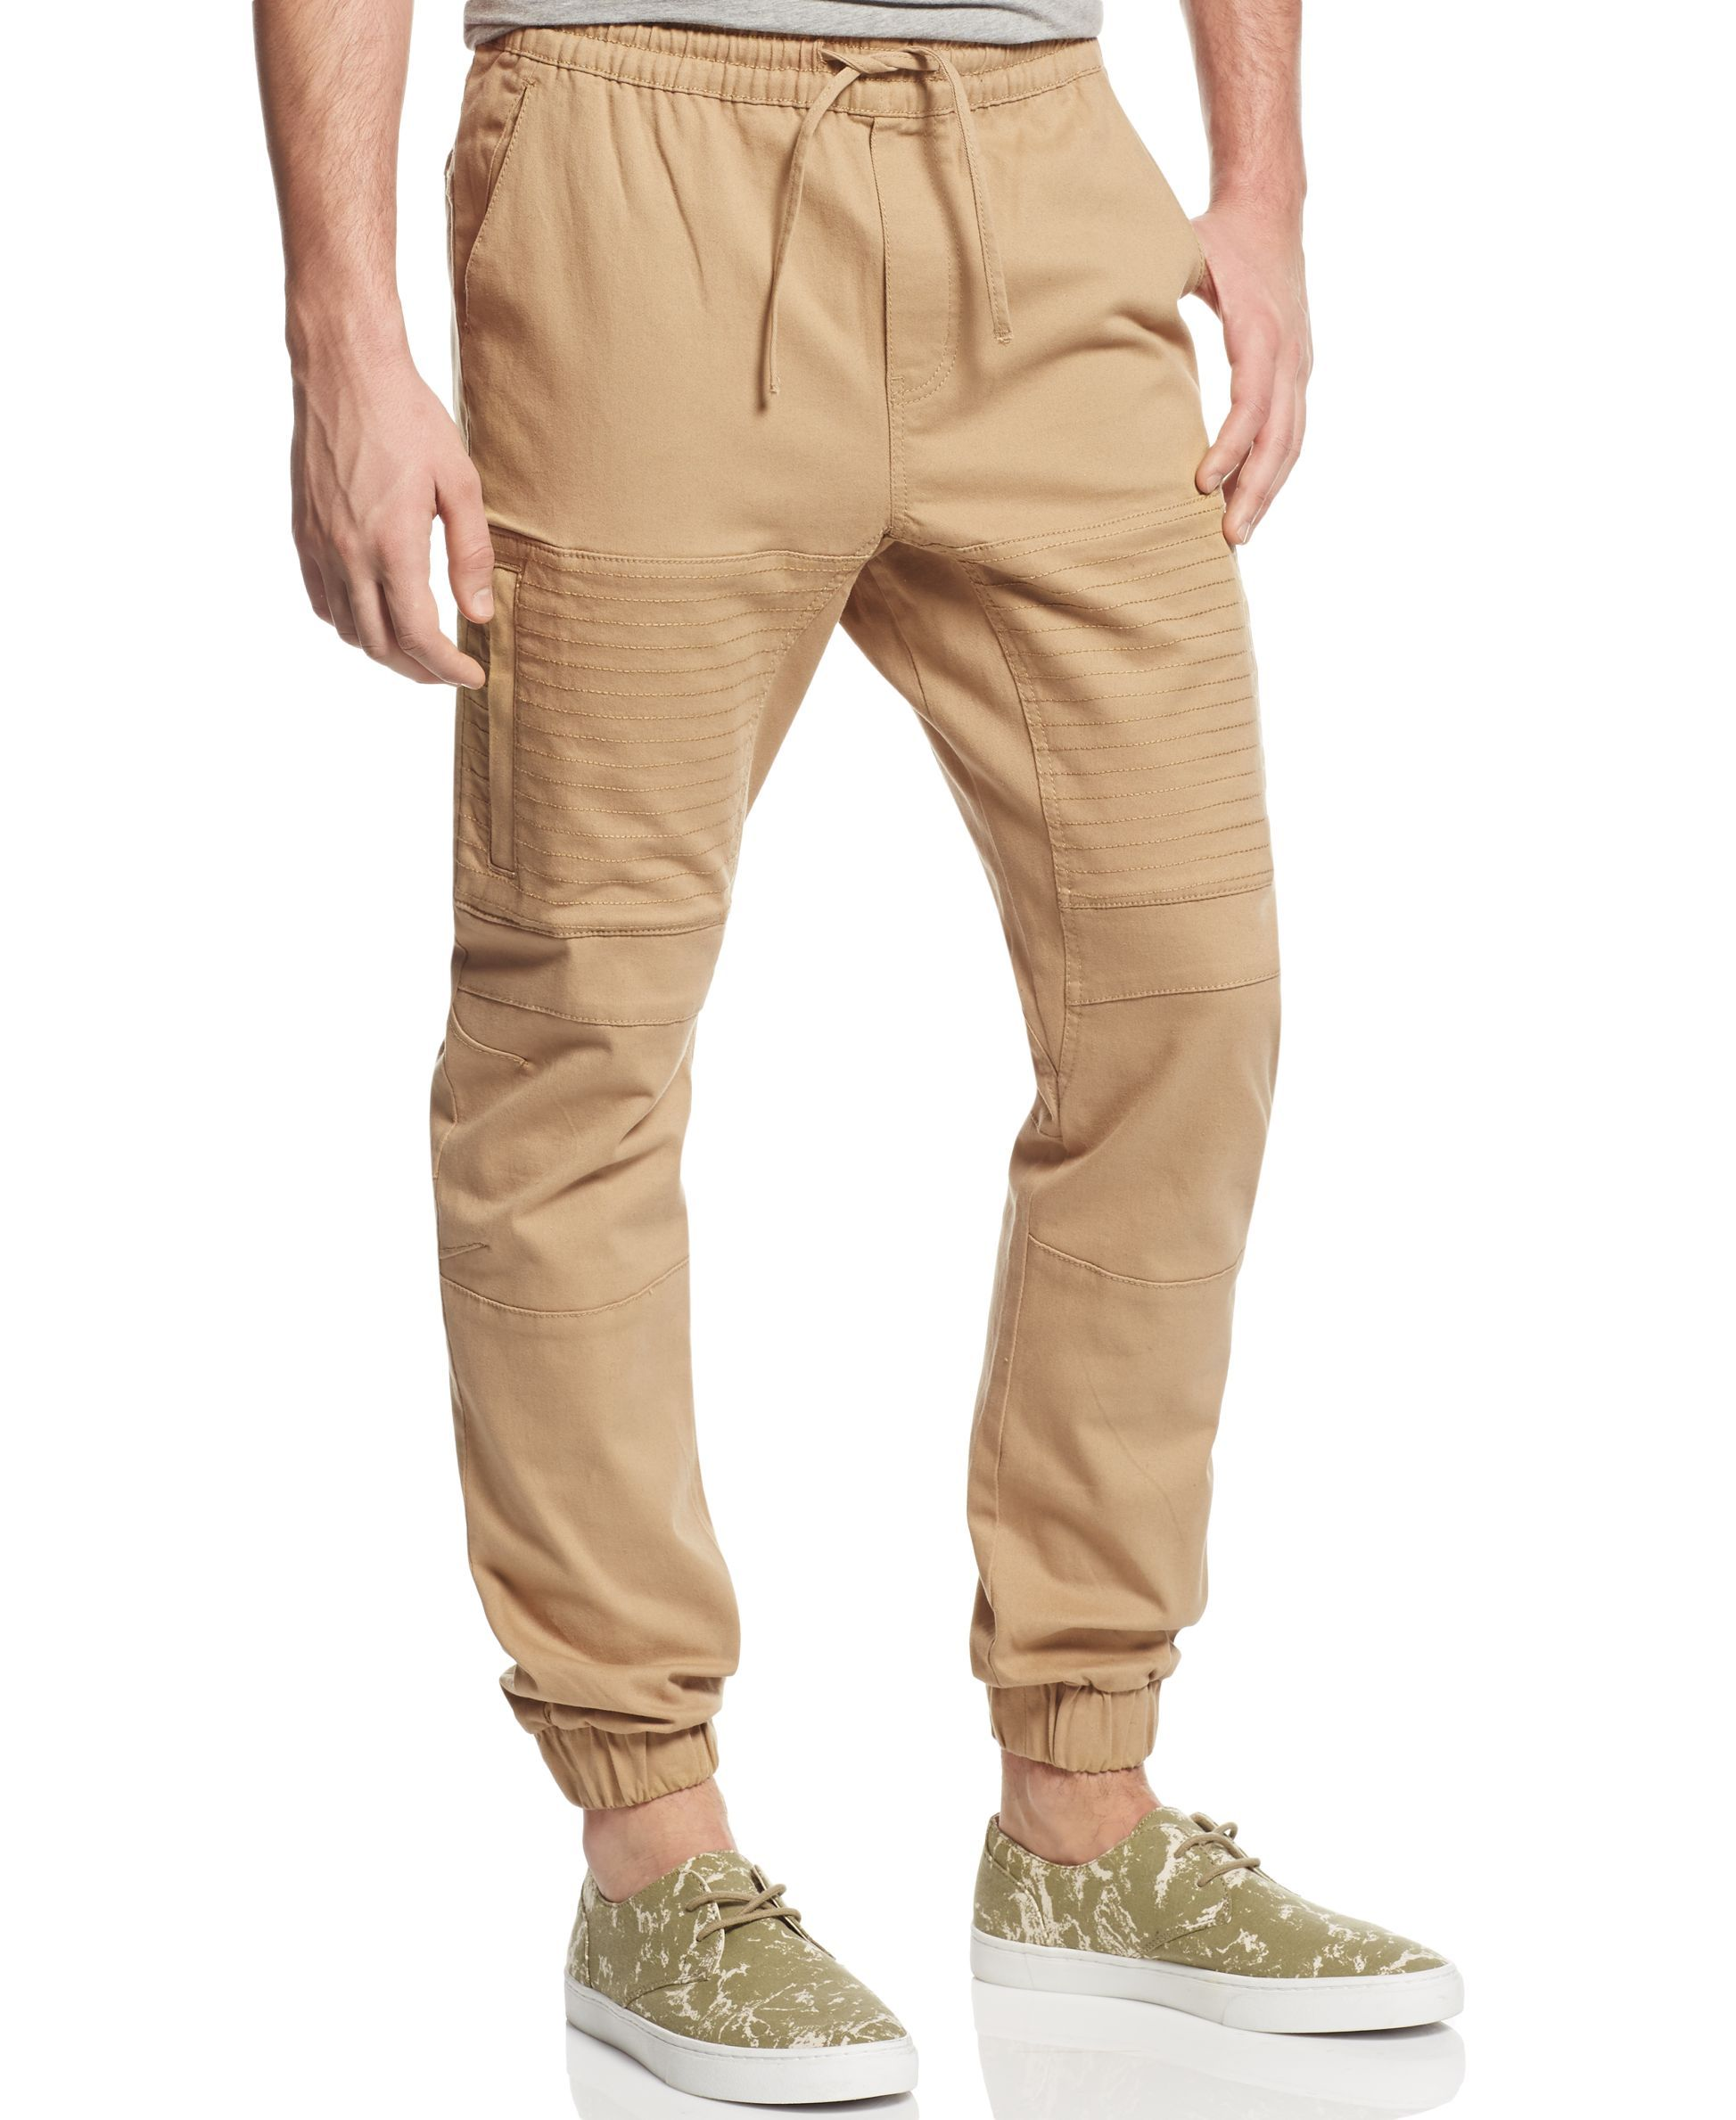 Basement by Ring of Fire Men's Twill Biker Jogger Pants, Only at Macy's -  Pants - Men - Macy's